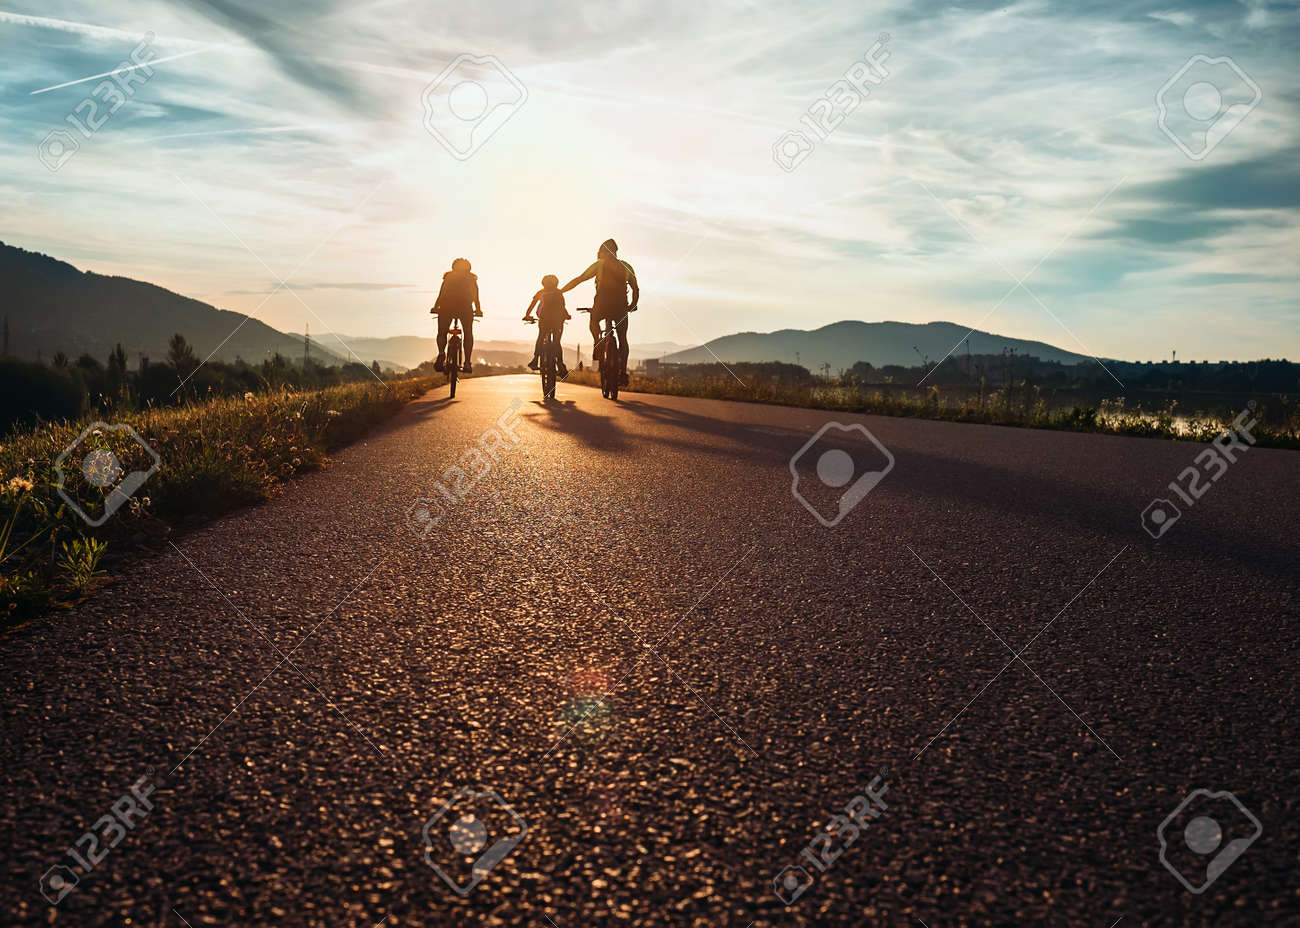 Ð¡yclists family traveling on the road at sunset - 65053758